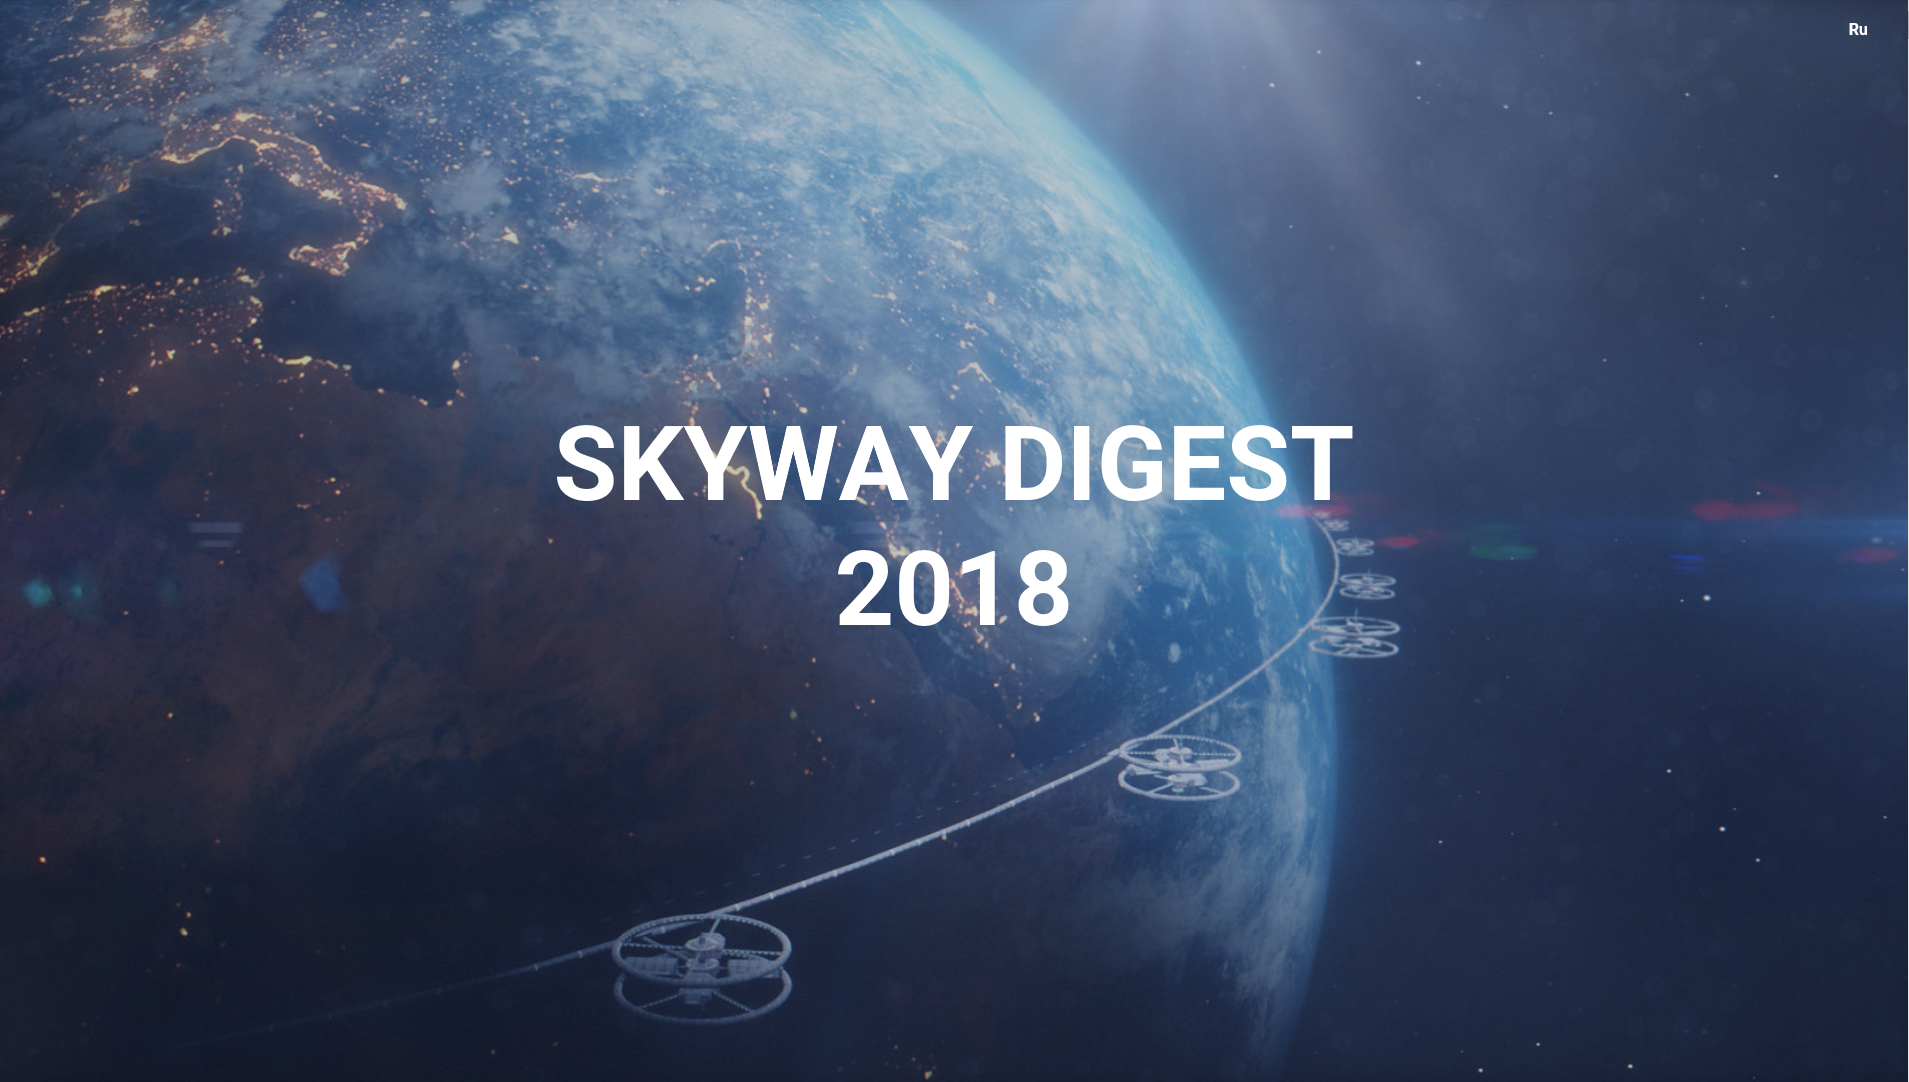 SkyWay Digest 2018